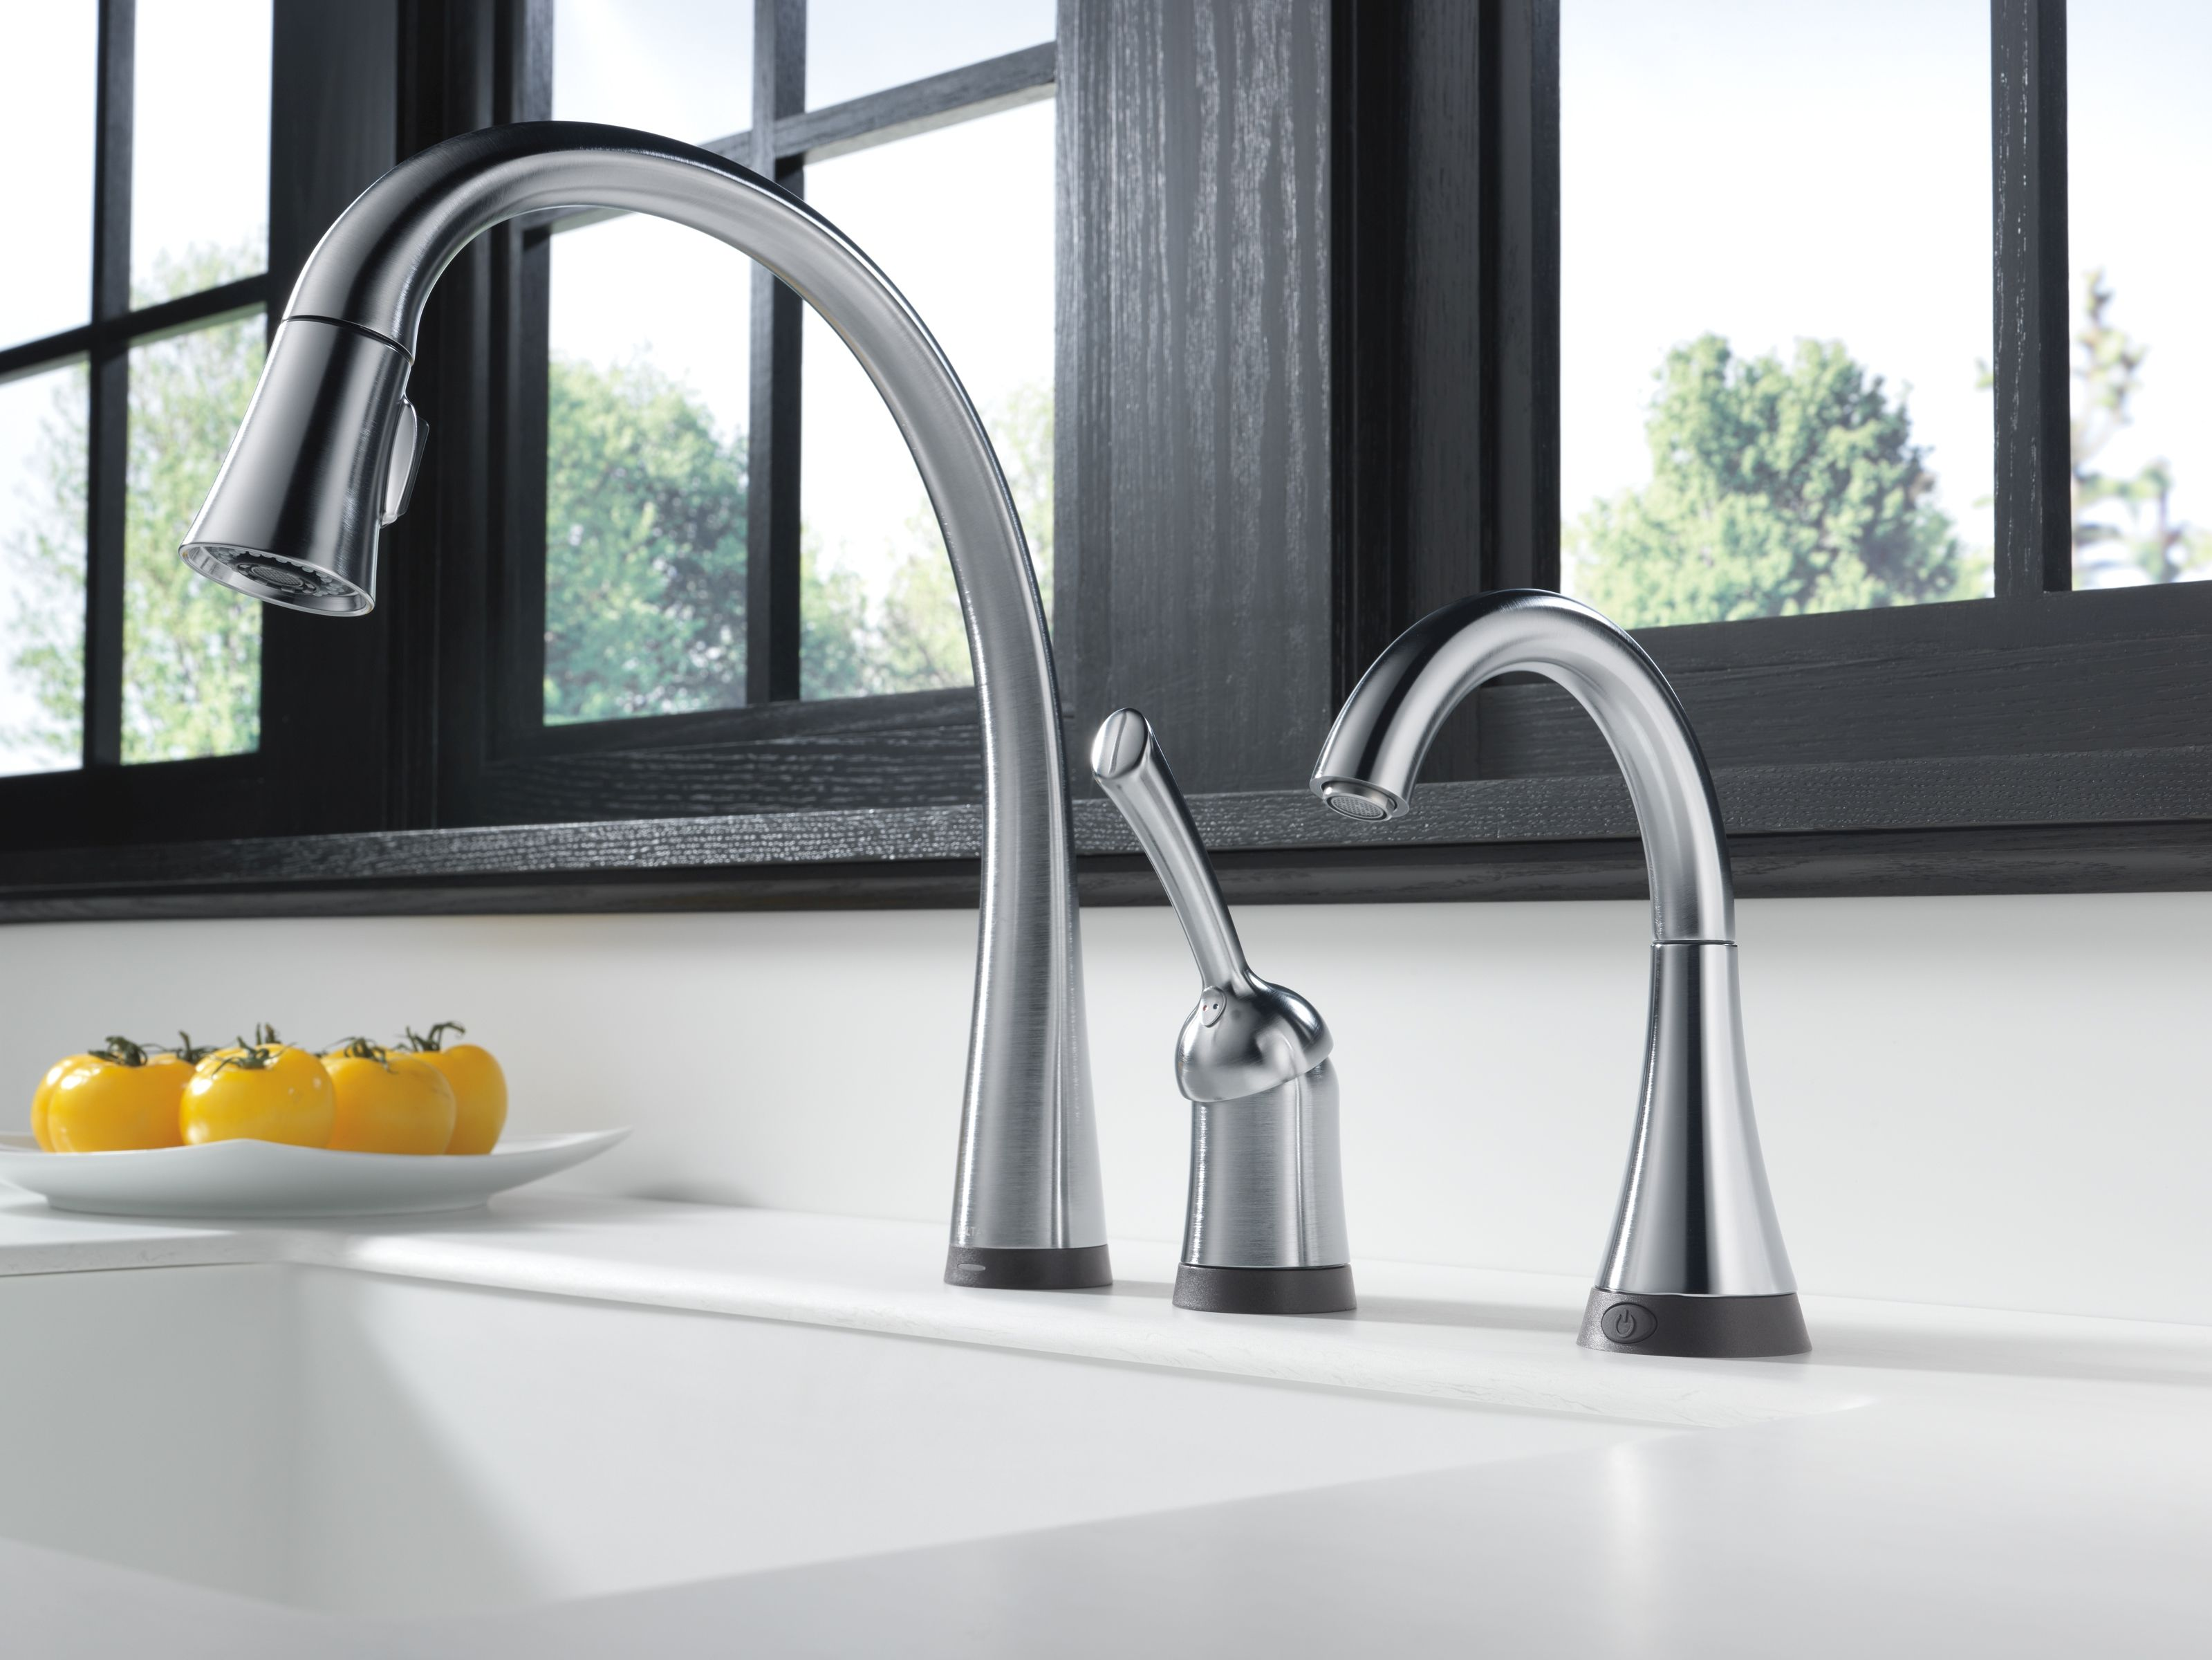 beverage only dst faucets water chrome ar and systems cold arctic works delta stainless other in includes with reverse running warranty faucet installed filtered lifetime osmosis